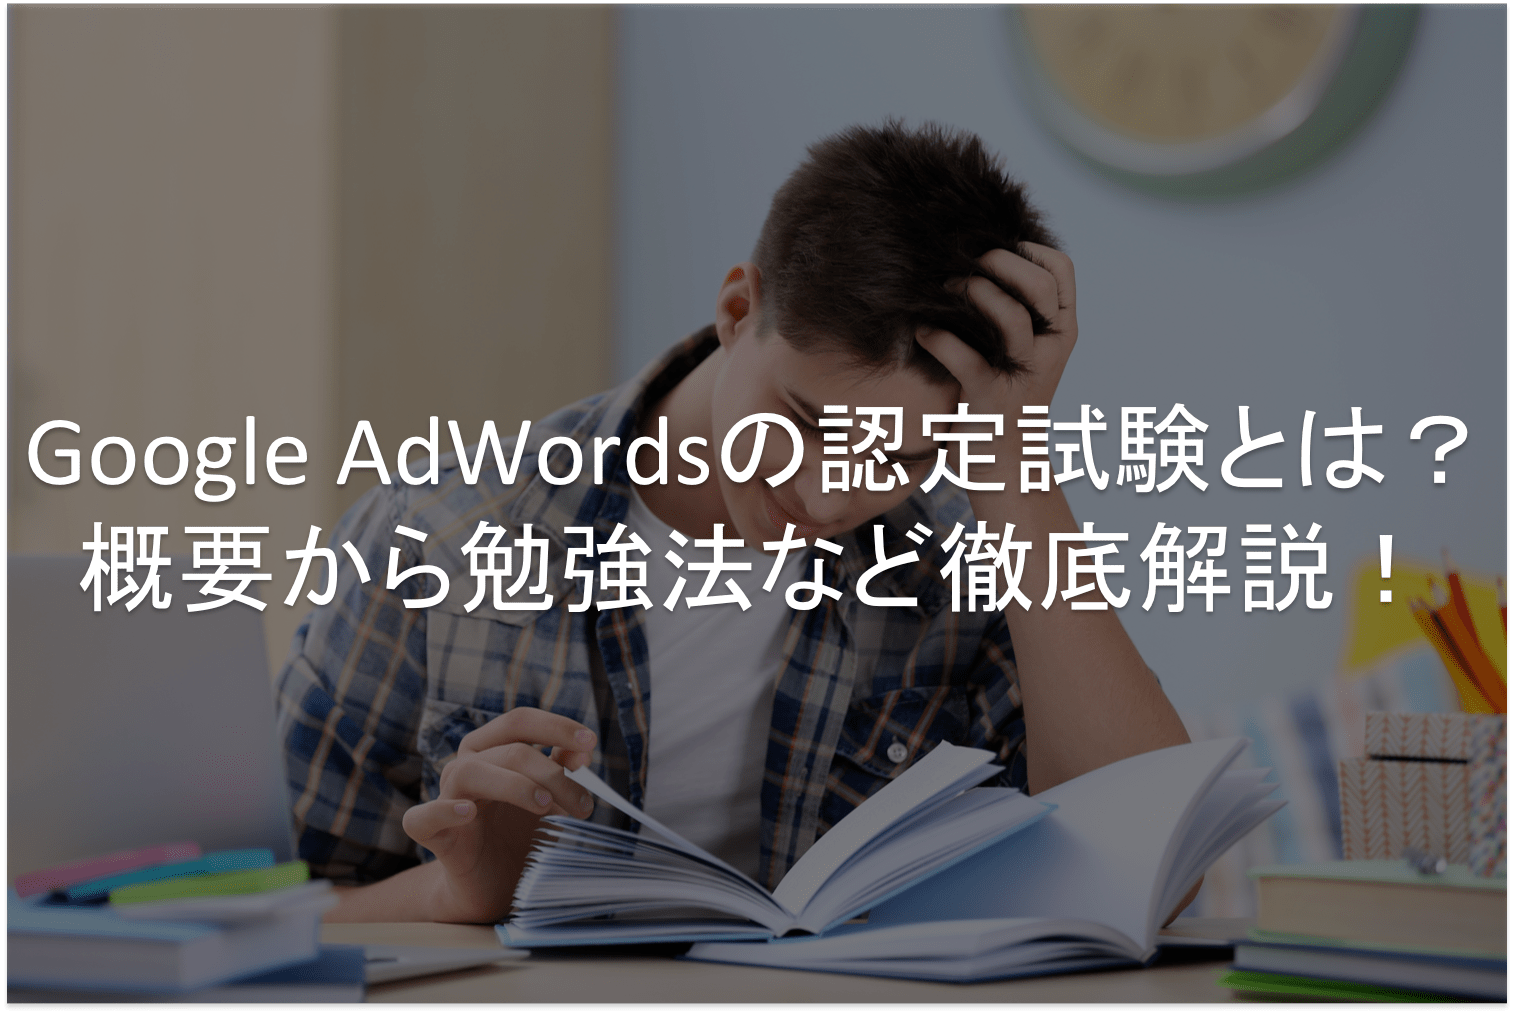 Google AdWords,試験